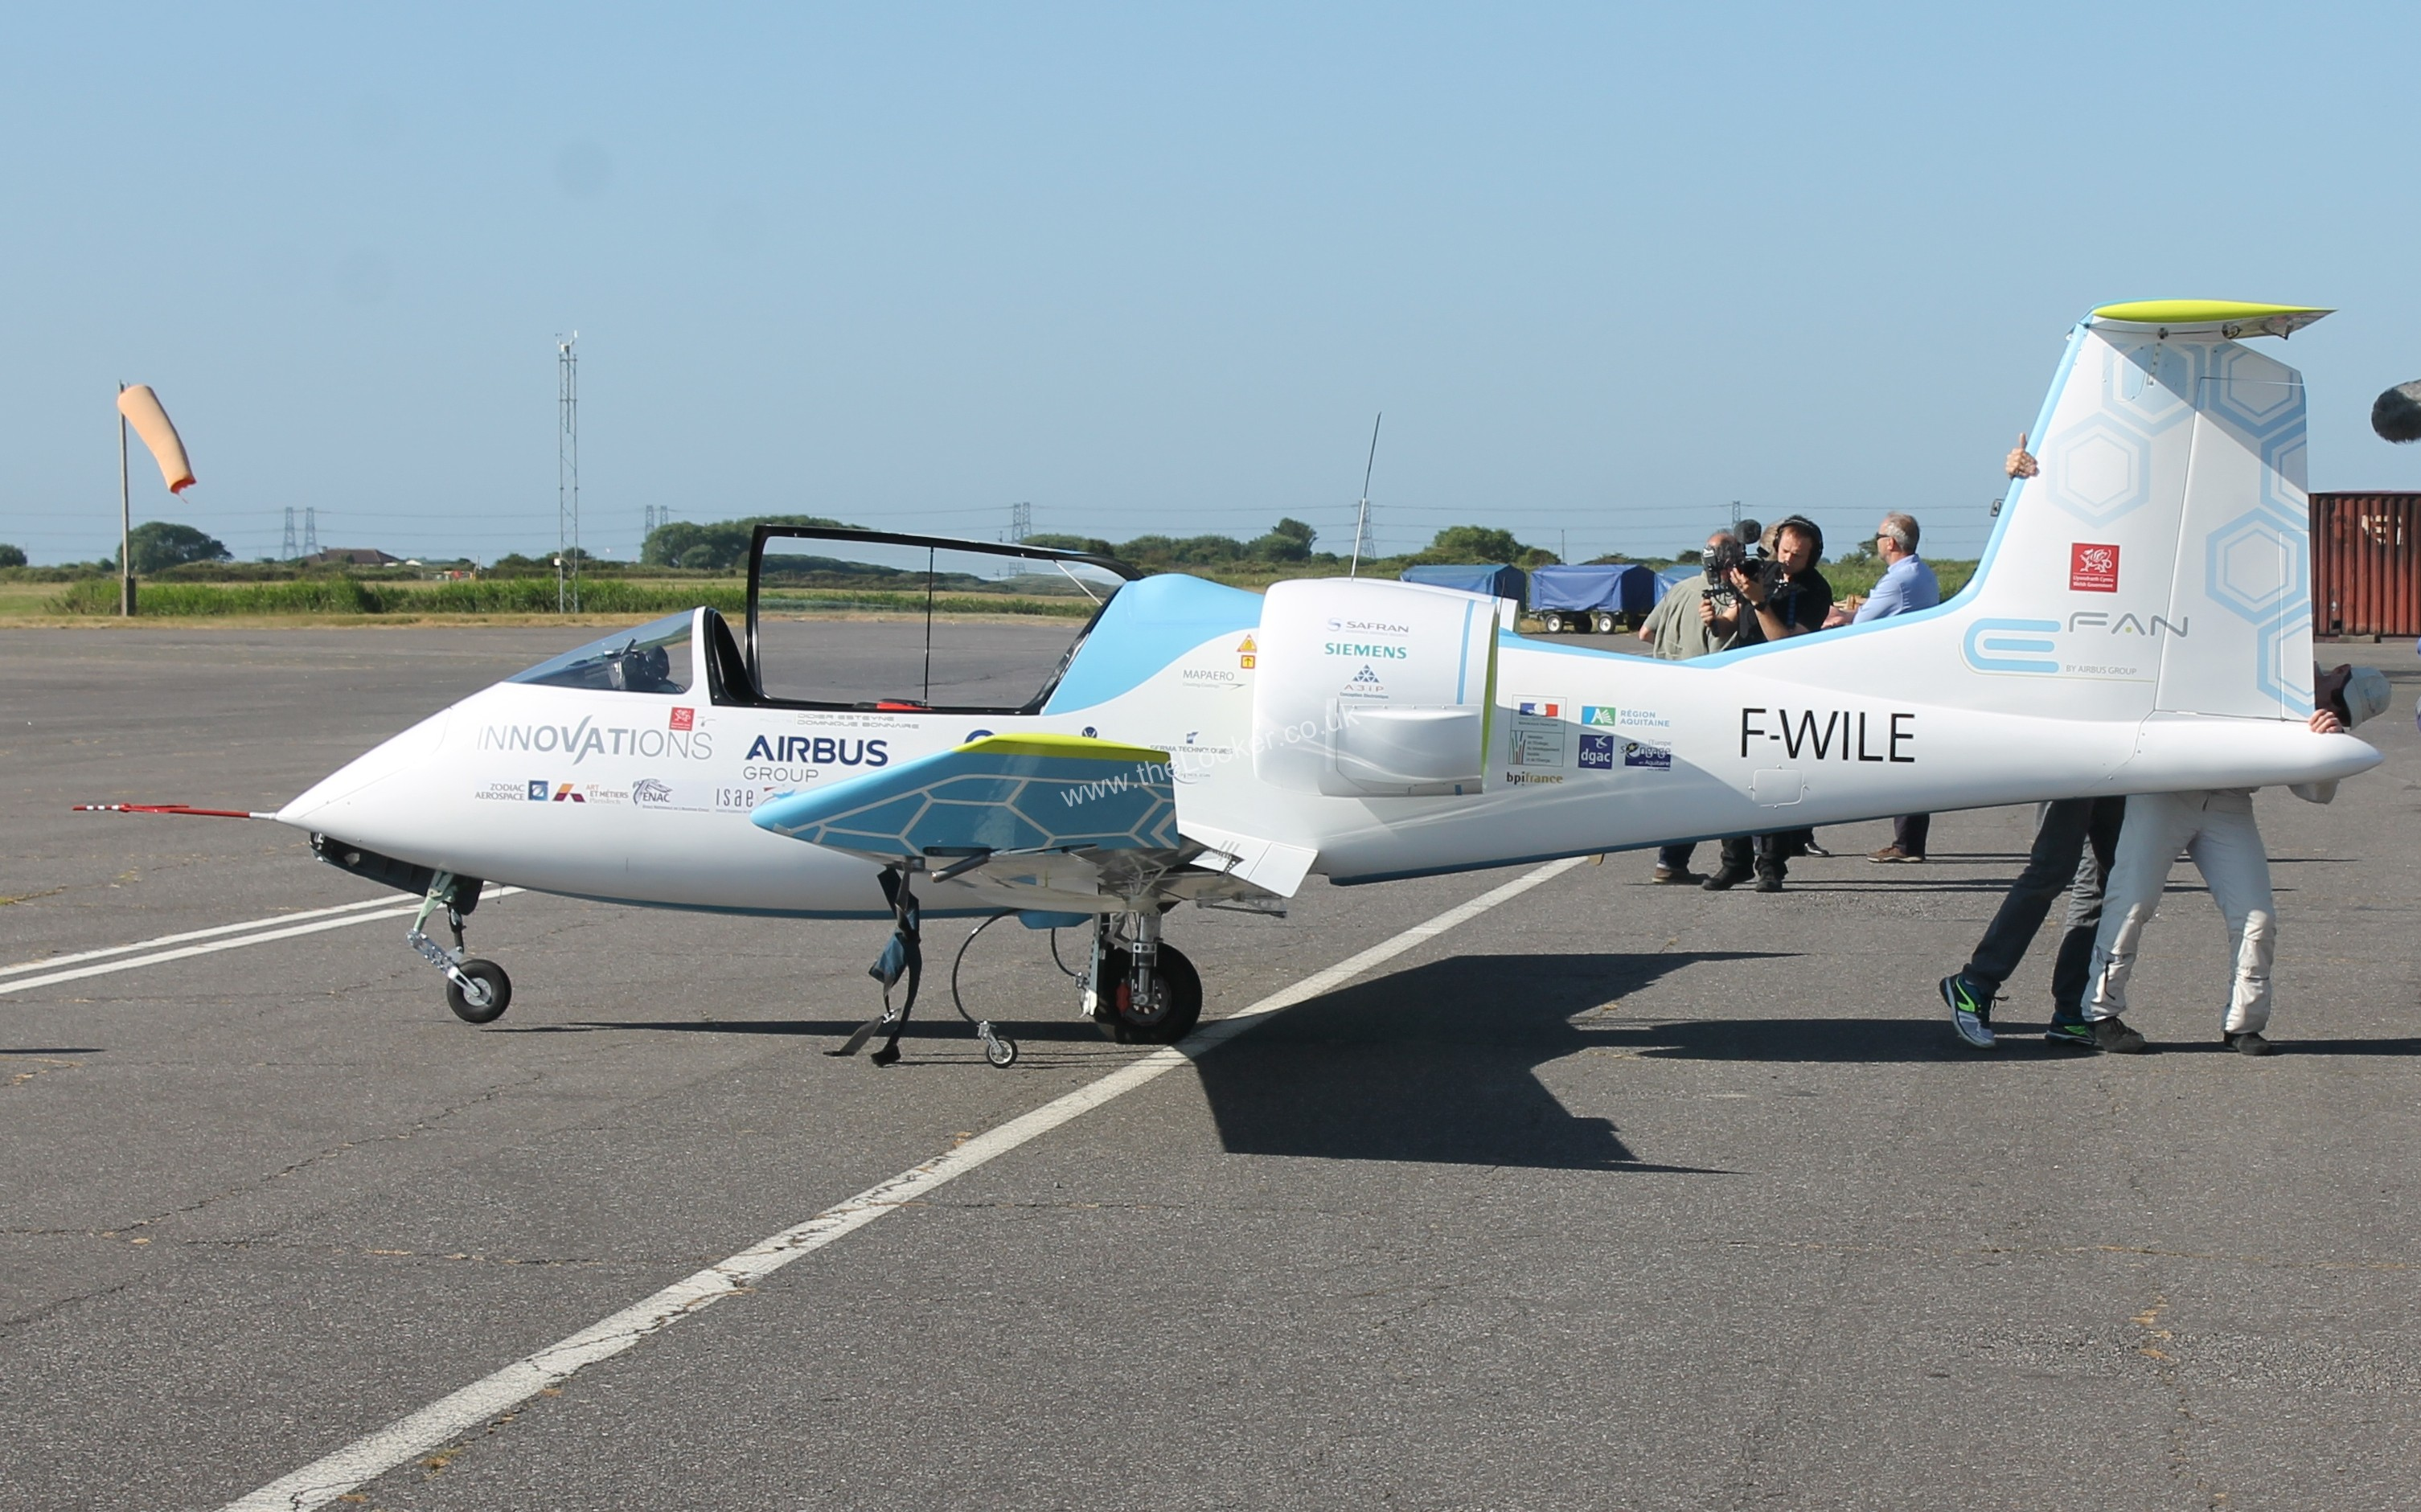 New Electric Airbus takes to the skies above Lydd in Historic Channel crossing